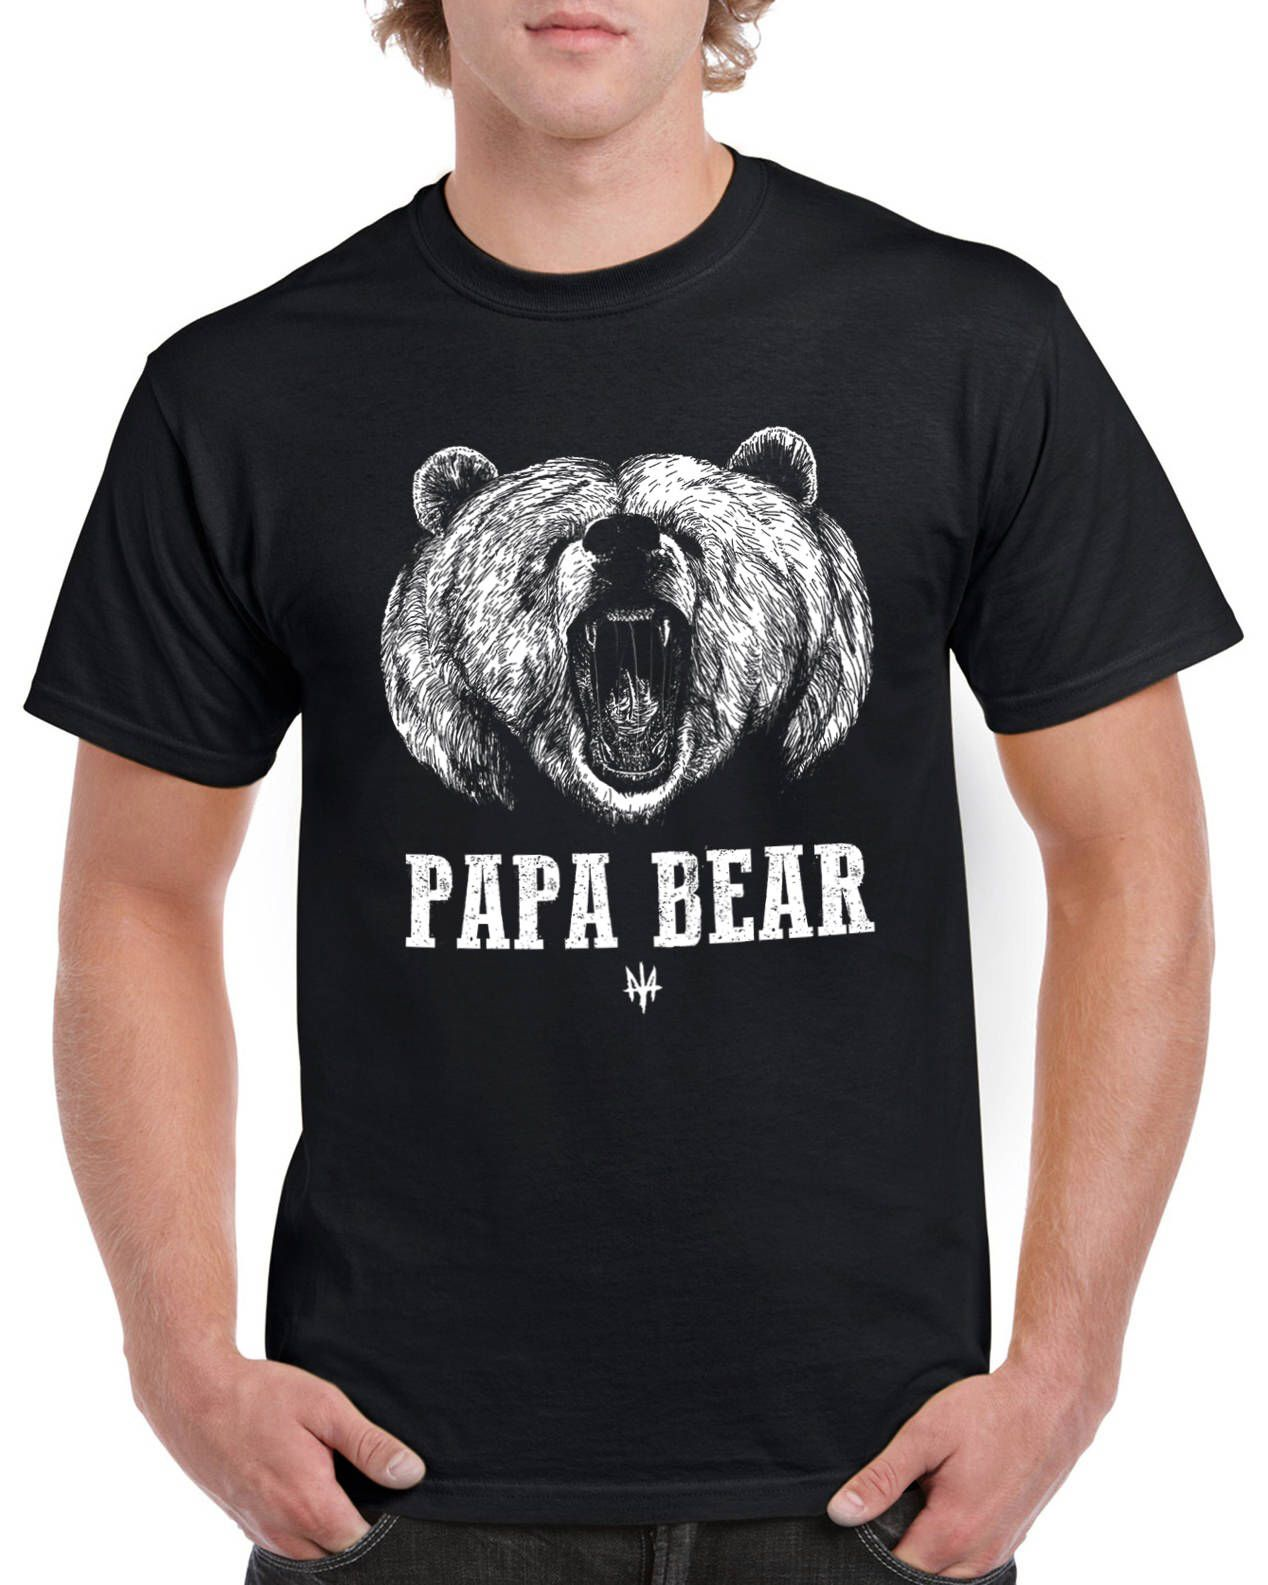 Papa bear shirt fathers day shirt dad t shirt papa bear tshirt papa bear shirt fathers day shirt dad t shirt papa bear tshirt gift for dad father bear shirt by fukishop on etsy httpsetsylistin publicscrutiny Gallery